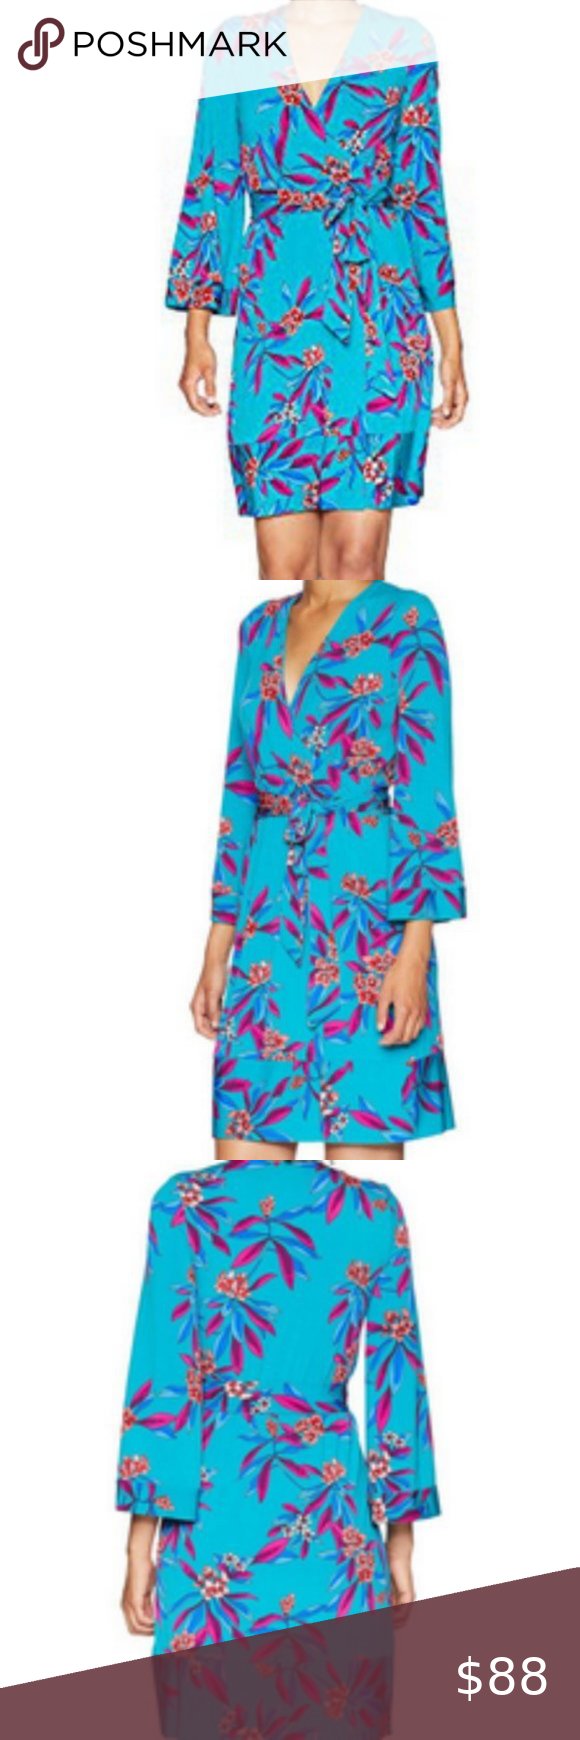 Photo of NWT Floral Print sz 8,12 floral Faux Wrap Dress new measurements size 12 on the …